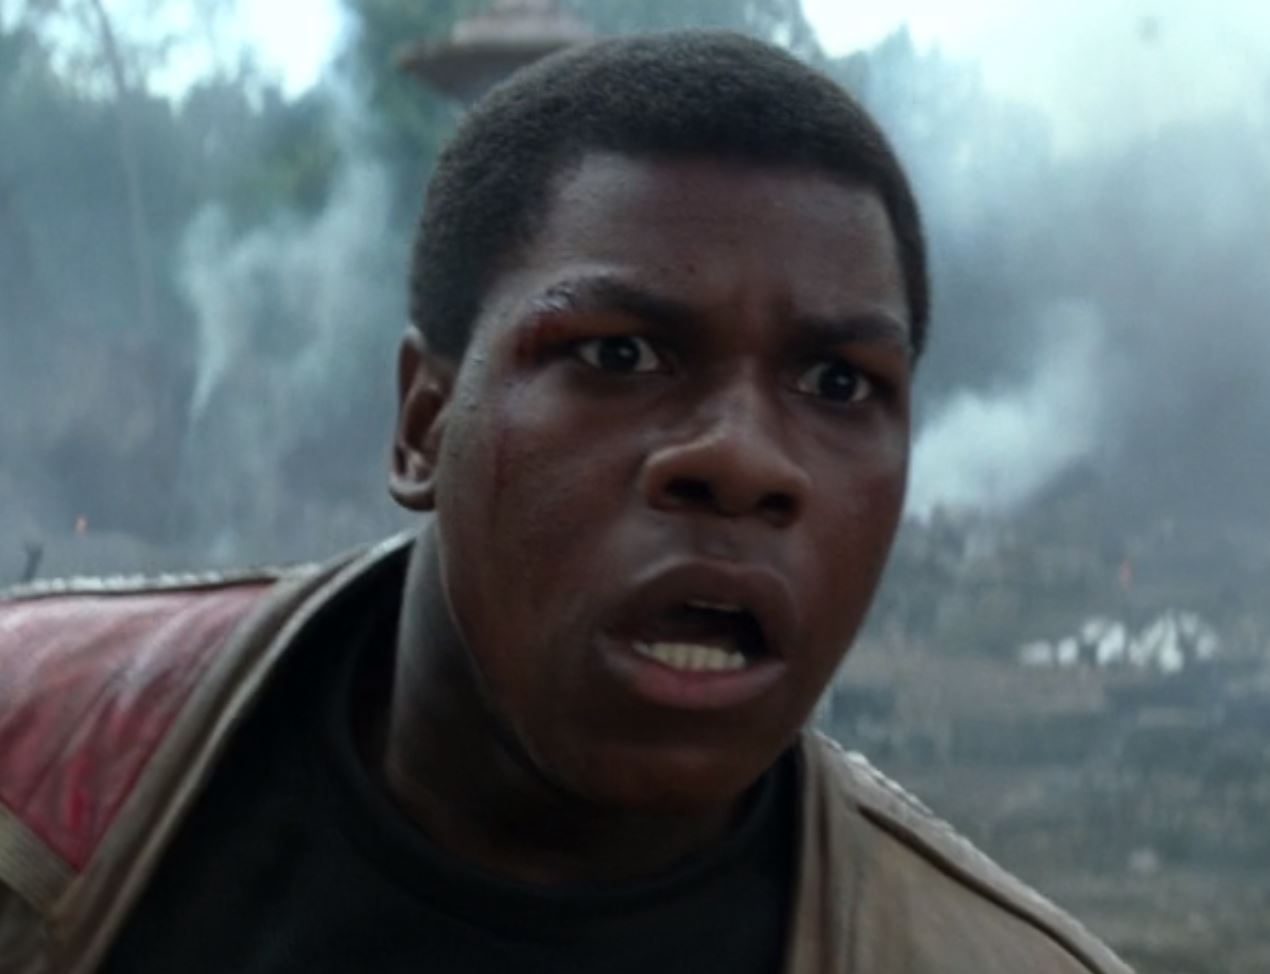 finn horrified